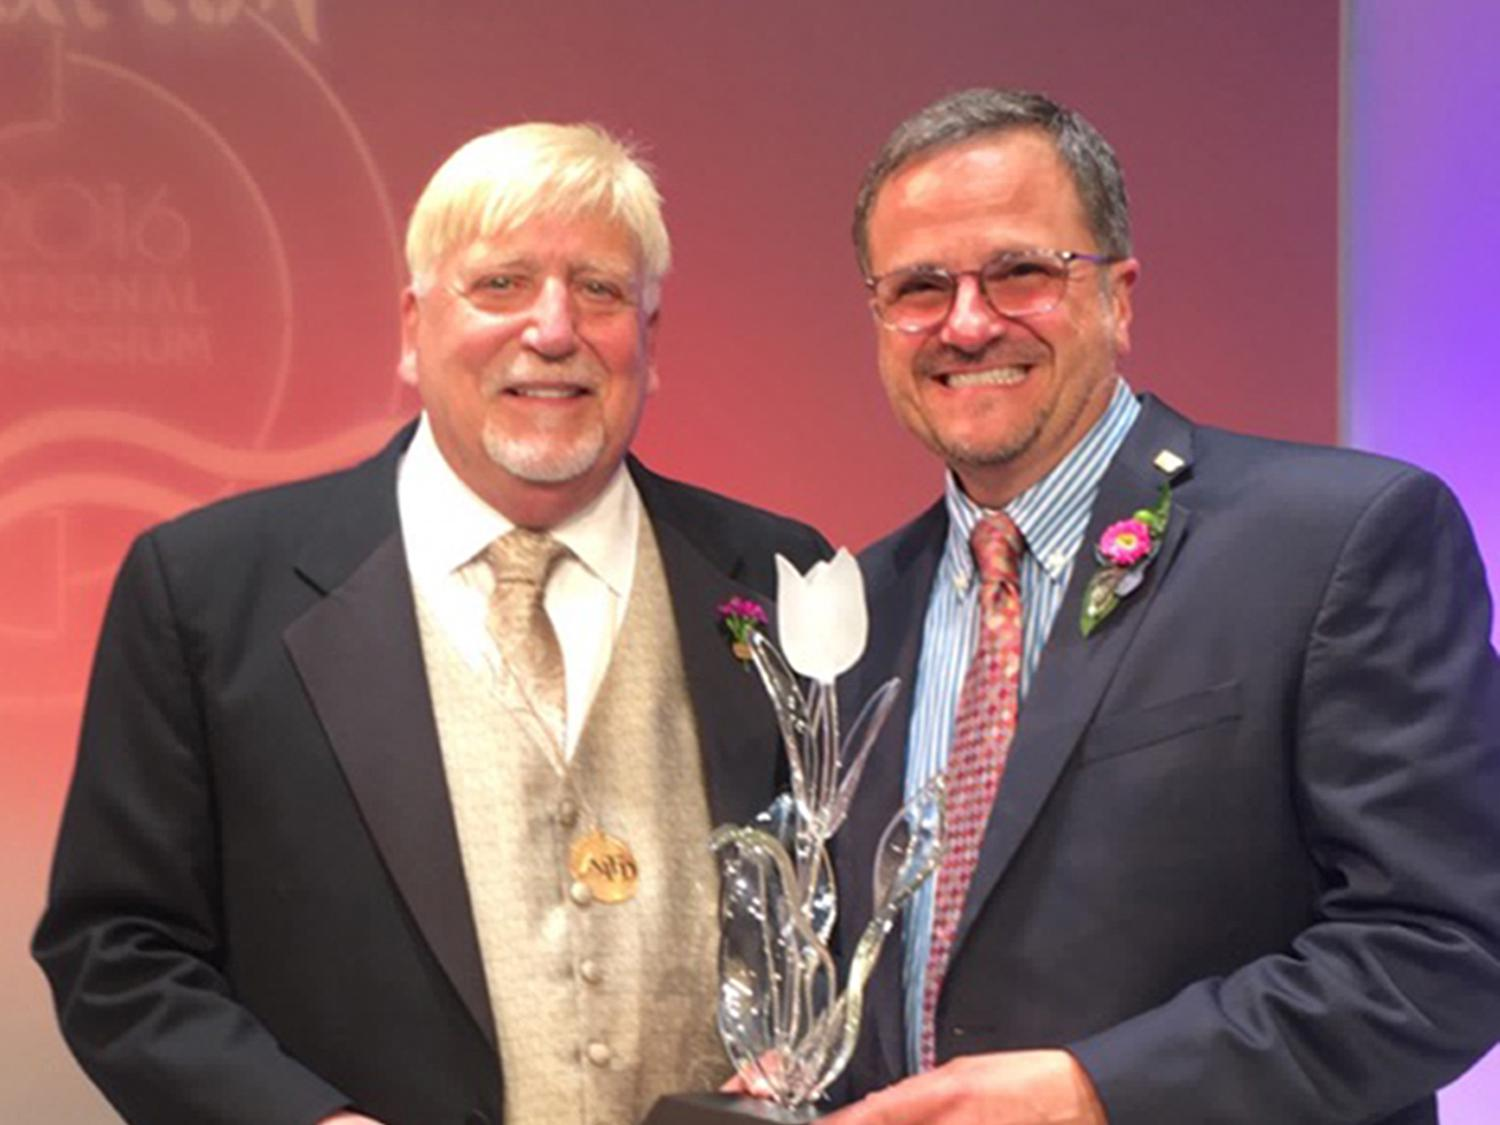 Mississippi State University Extension Service floral design specialist Jim DelPrince, right, accepted the American Institute of Floral Designers Award of Distinguished Service to the Floral Industry from Awards Committee Chairman Rich Salvaggio during the organization's annual National Symposium in July. (Photo courtesy of American Institute of Floral Designers)